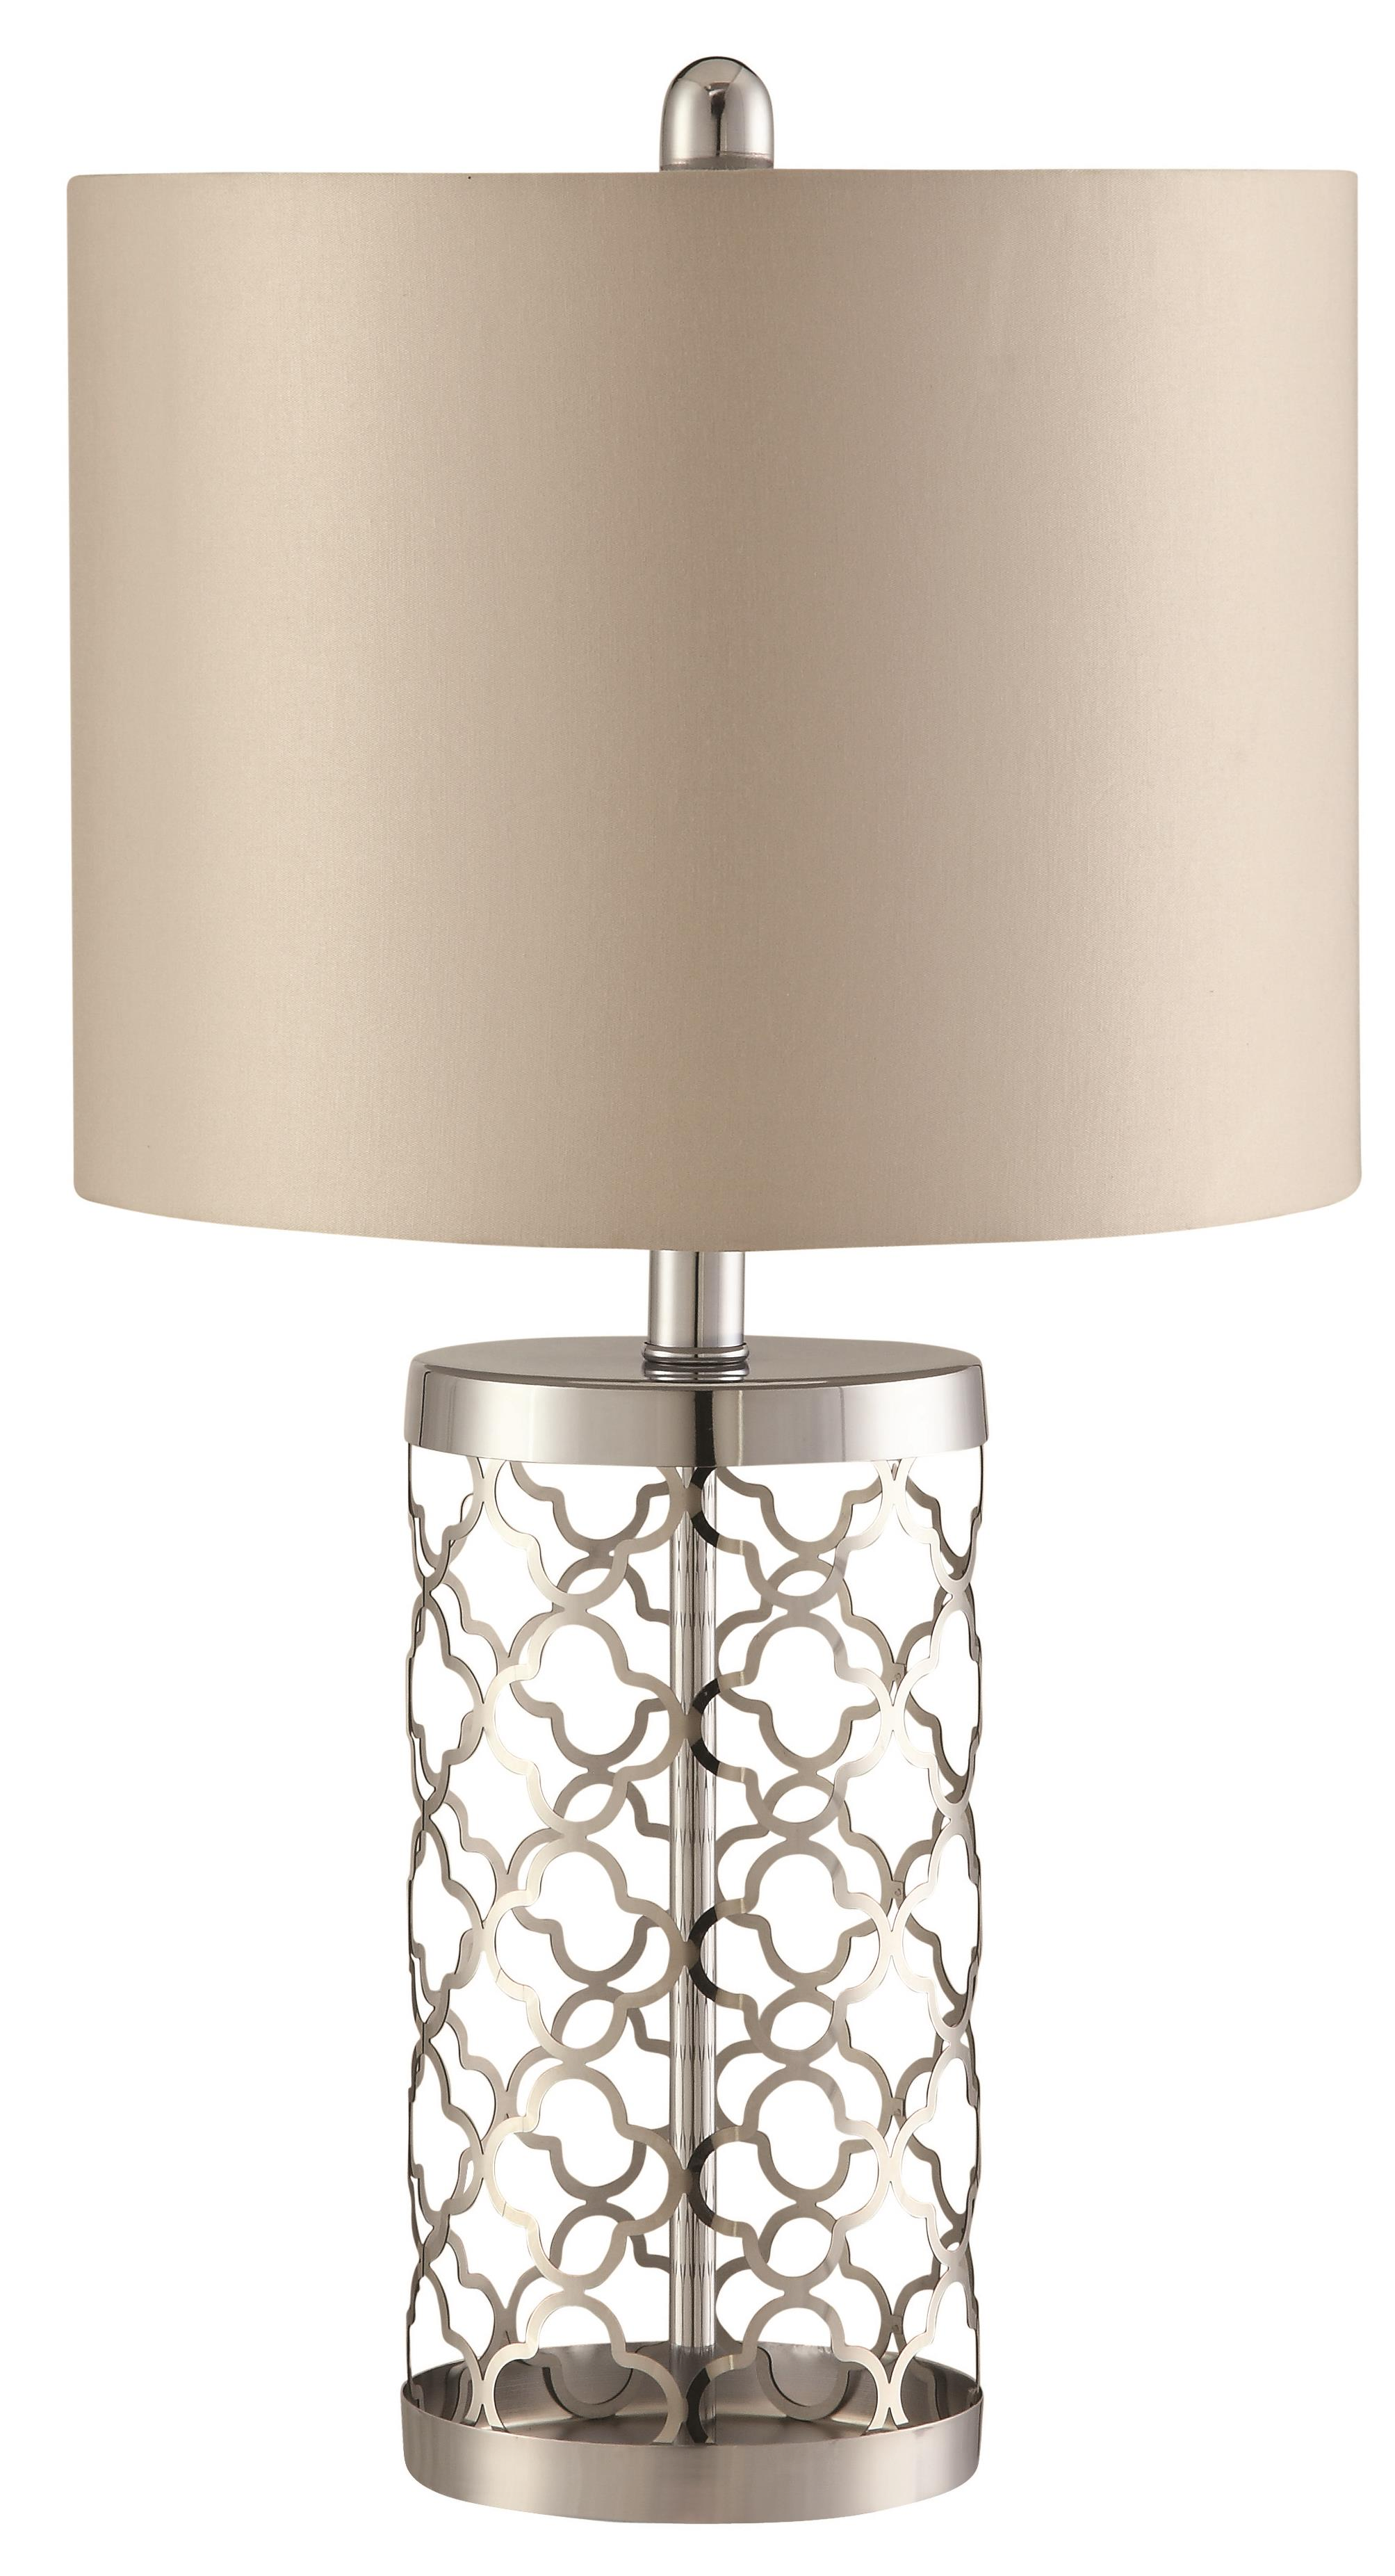 Coaster Table Lamps Table Lamp - Item Number: 901314